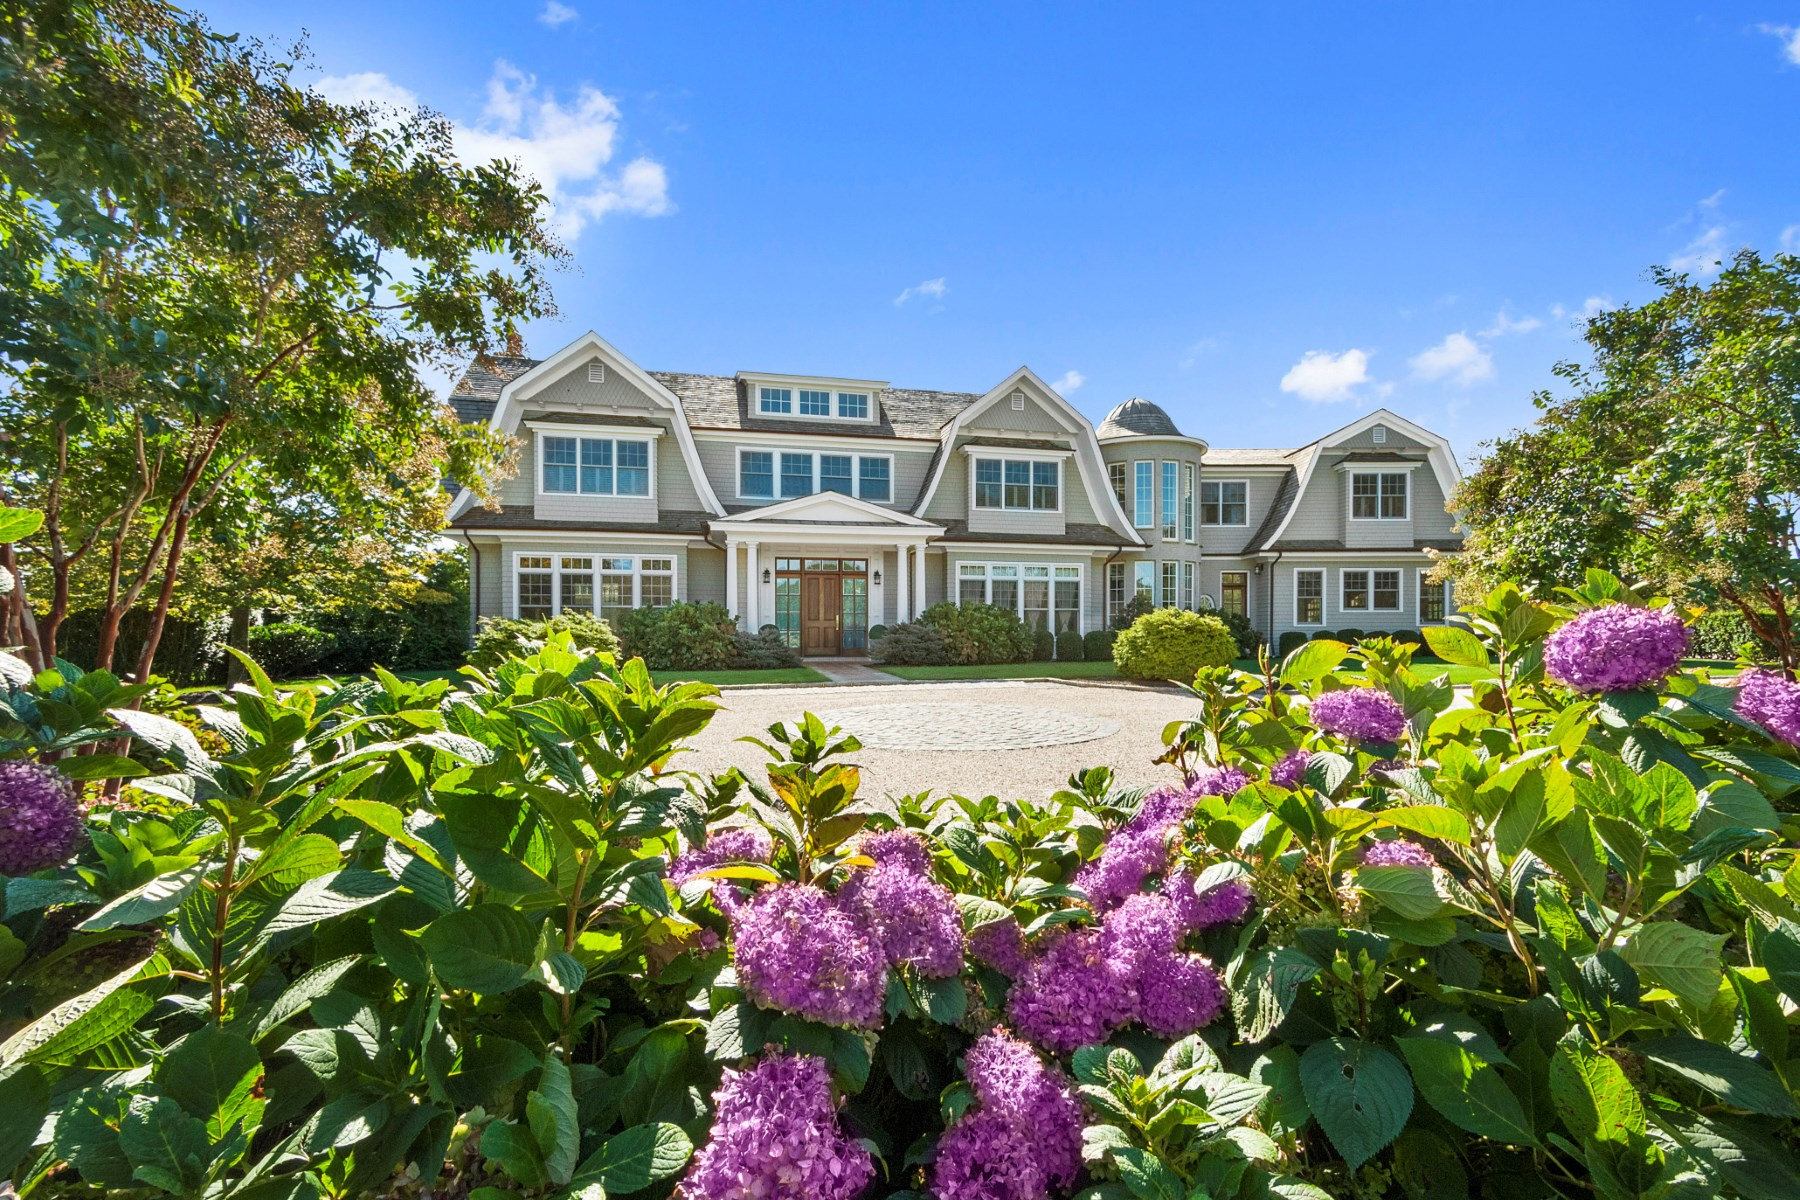 Single Family Home for Sale at Sagaponack Traditional 515 Parsonage Lane Sagaponack, New York, 11962 United States